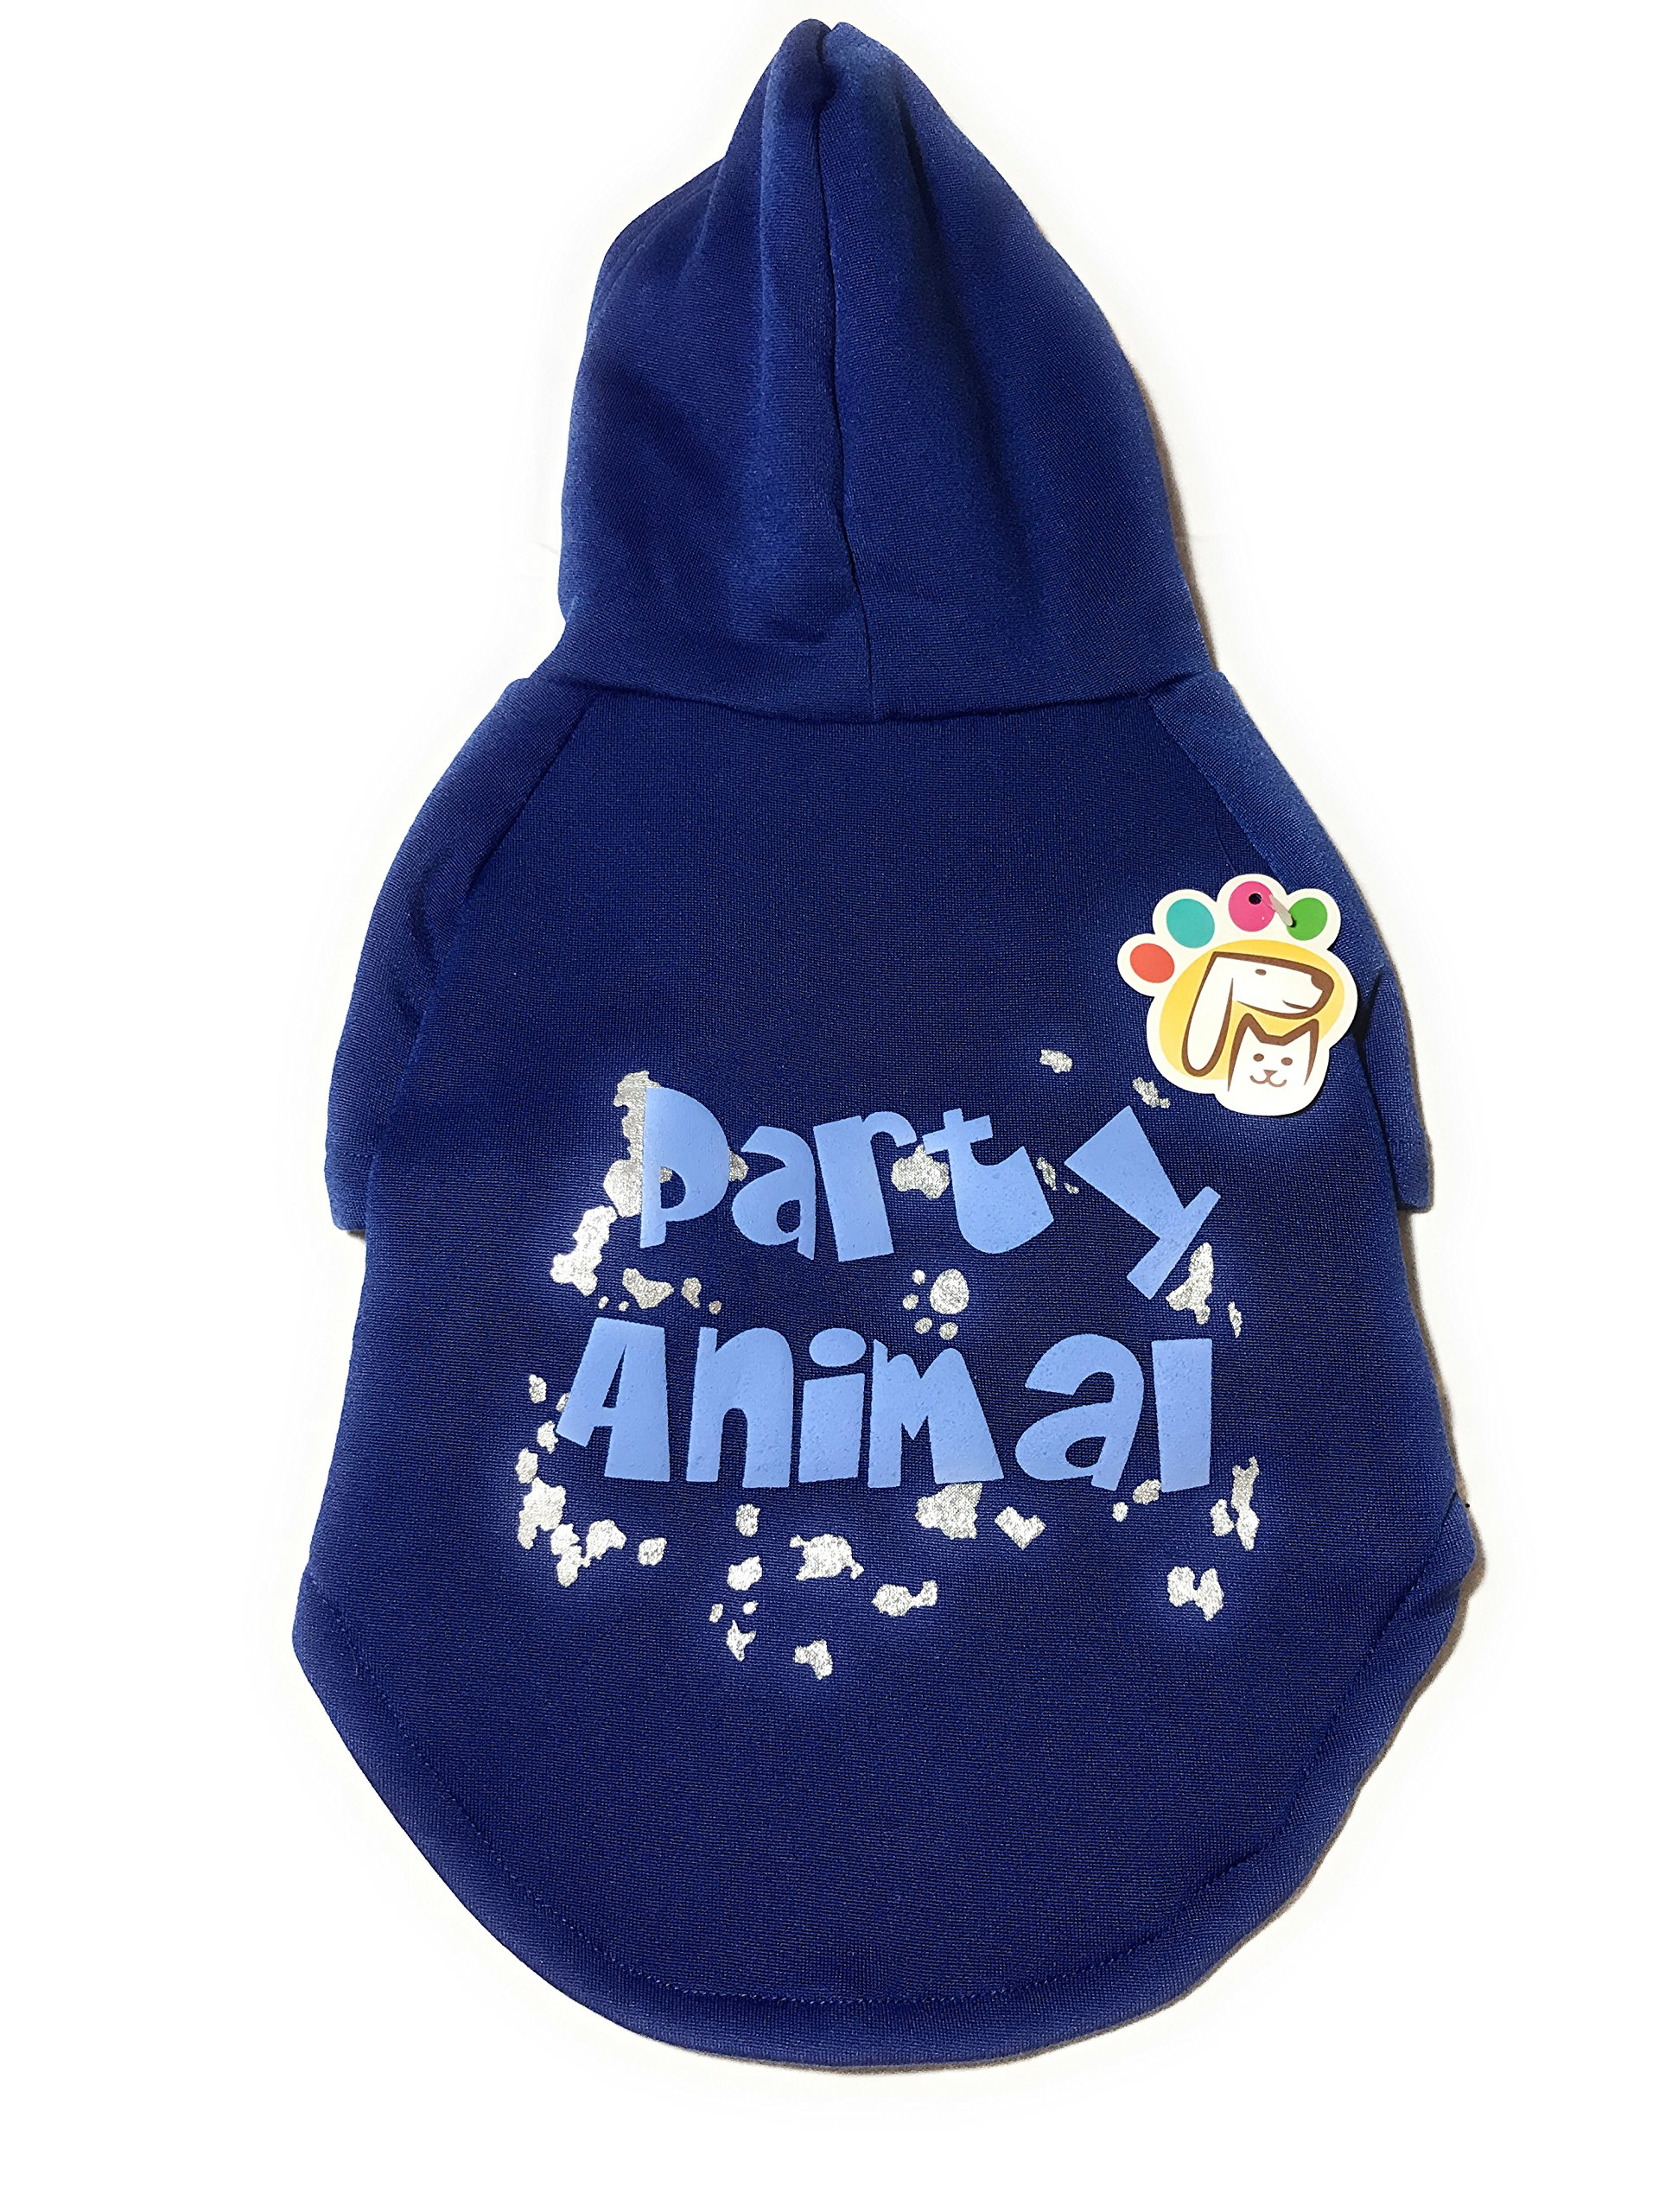 Dog or Puppy Sweater Hoodie ´Party Animal´ Blue and Silver for Small Pets XS size/ Extra Small Fashion and Funny Hoodie Shirt Petmont Brand For Boys Or Girls